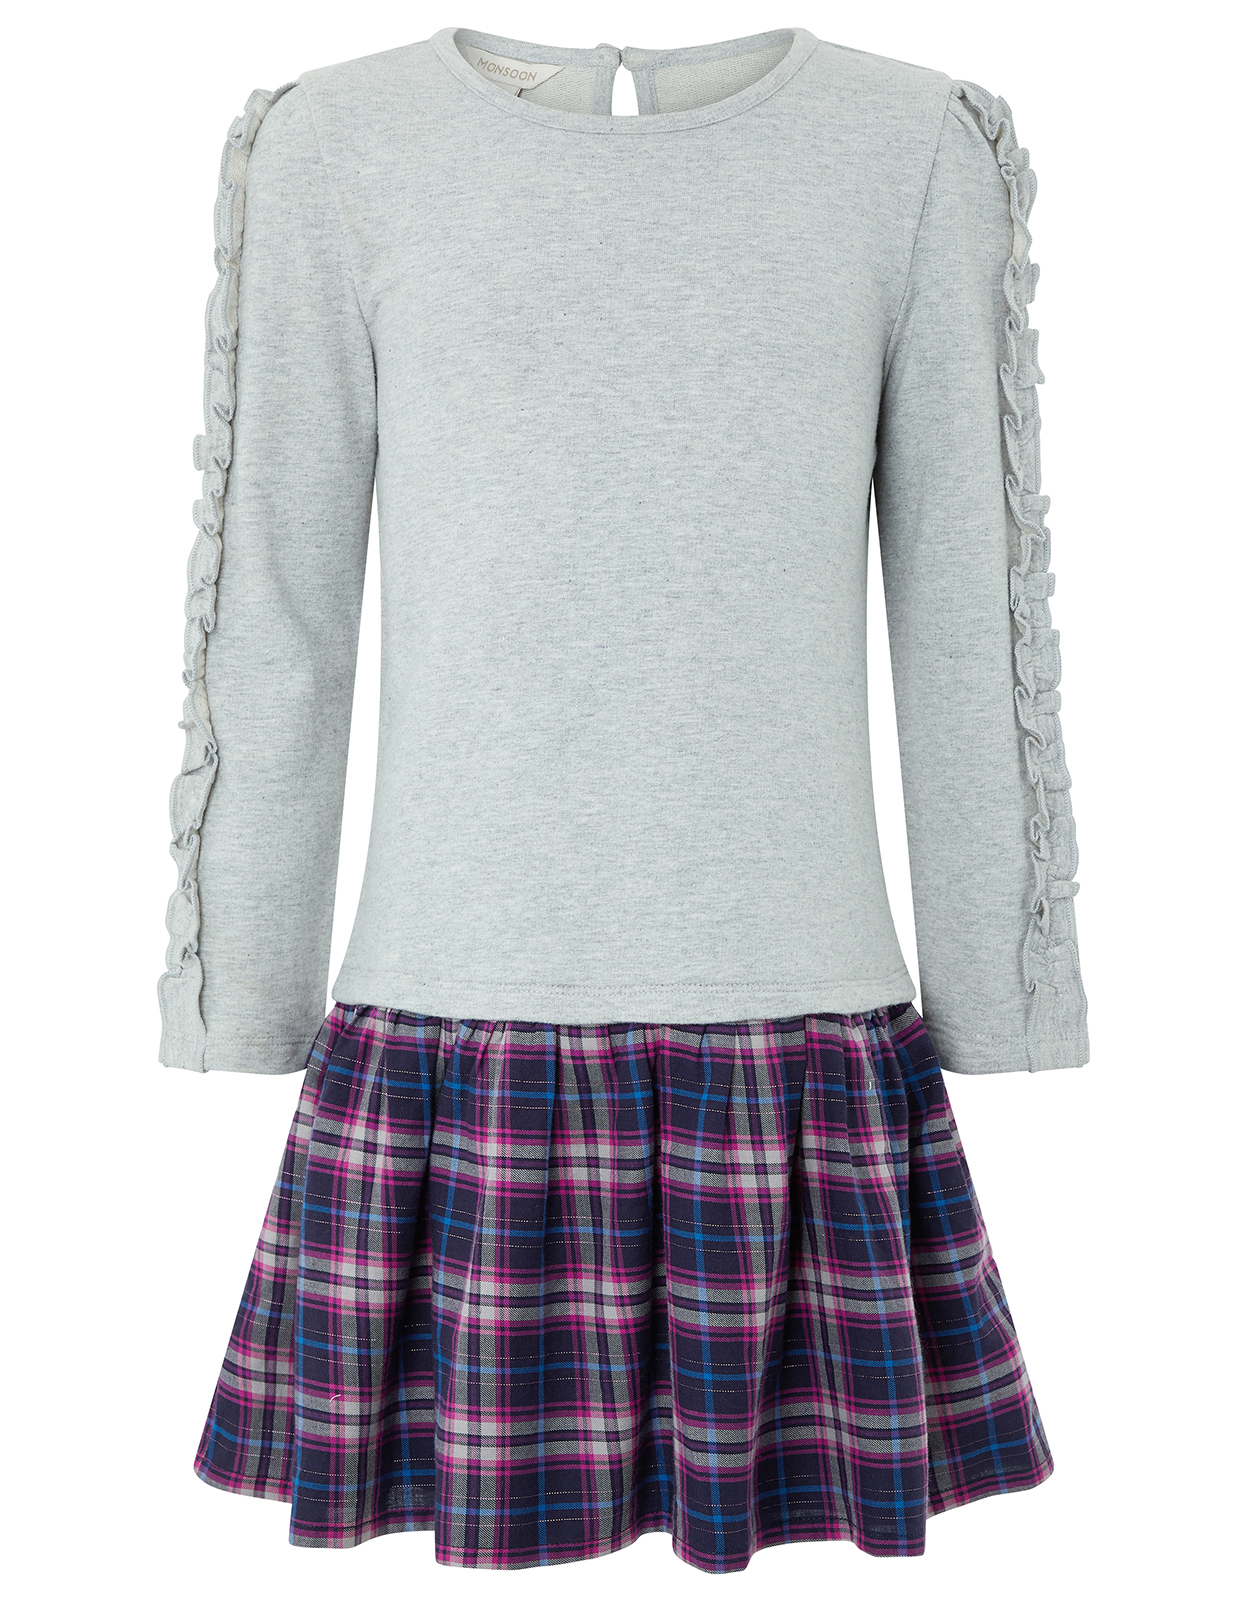 Children : Monsoon Clothing, Dresses Outlet, Up To 70% Off